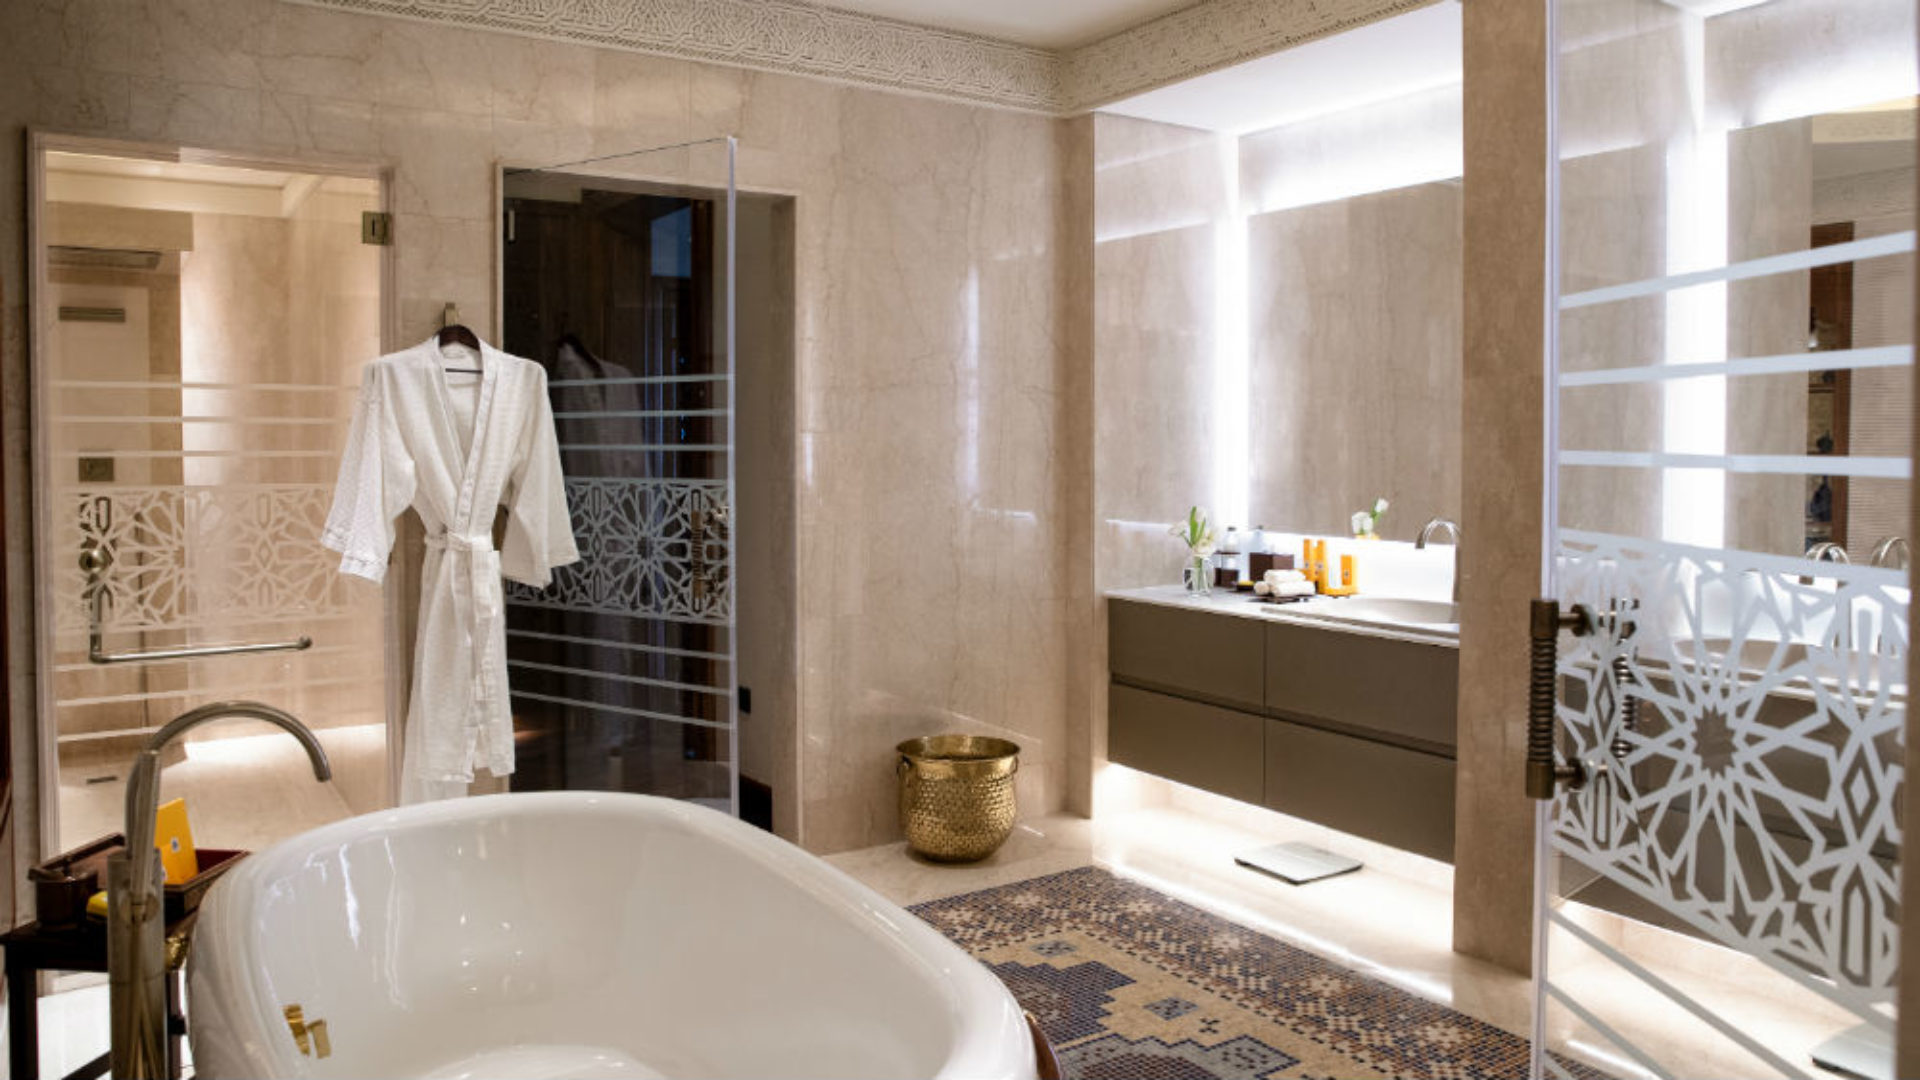 Royal Suite Bathroom at the Jumeirah Al Qasr